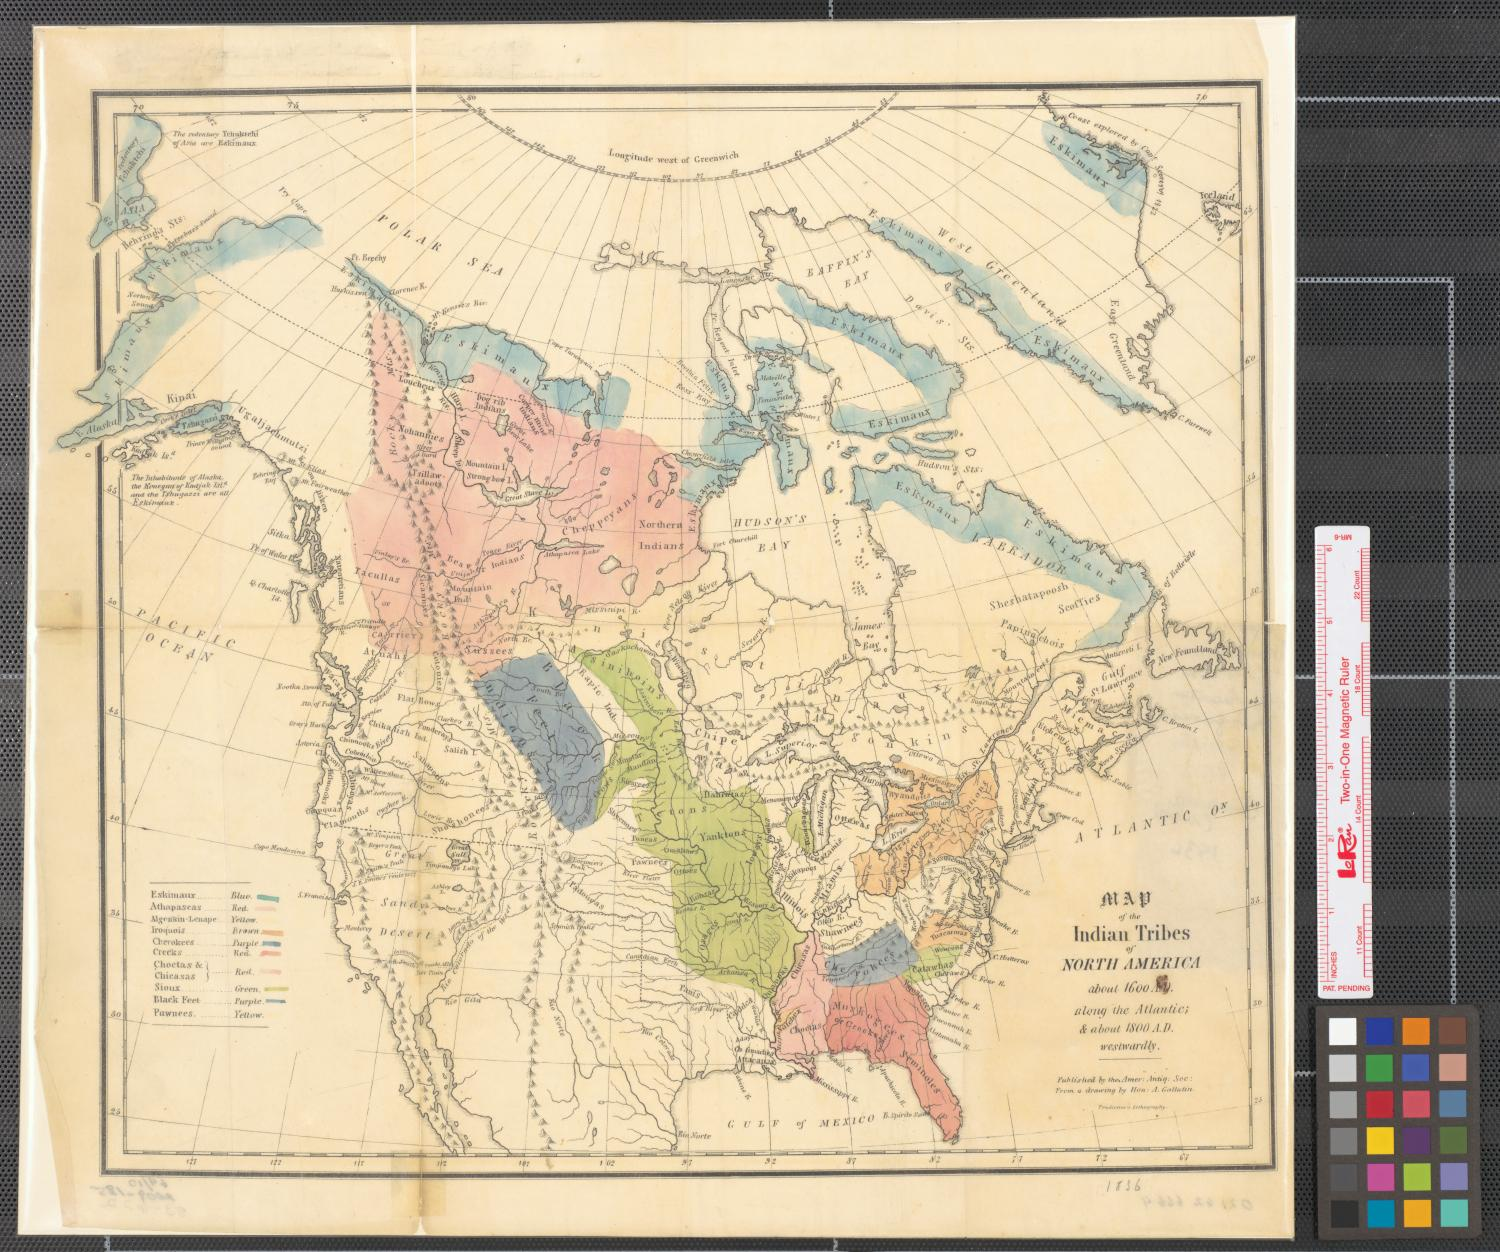 Map Of The Indian Tribes Of North America About AD Along - Native american tribes arkansas map